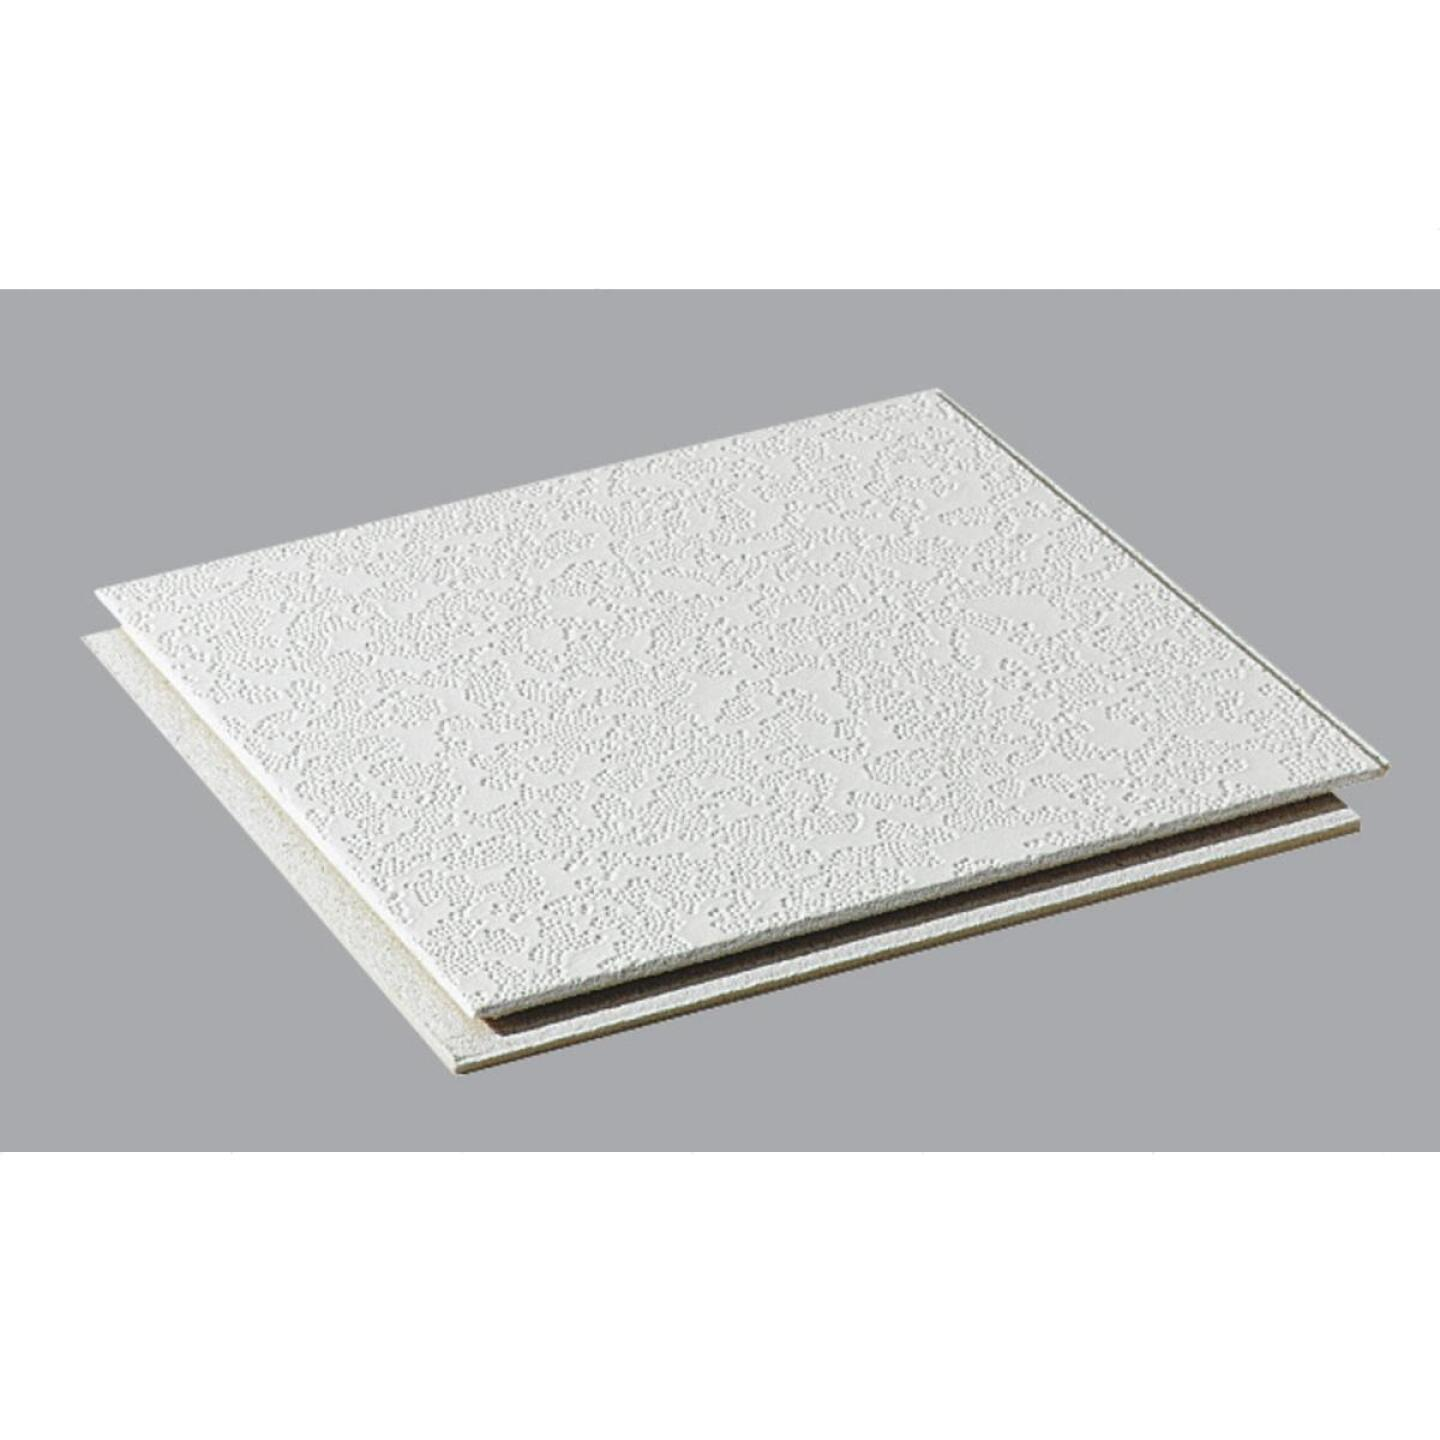 BP Silencio Cambray 12 In. x 12 In. White Wood Fiber Nonsuspended Ceiling Tile (32-Count) Image 1